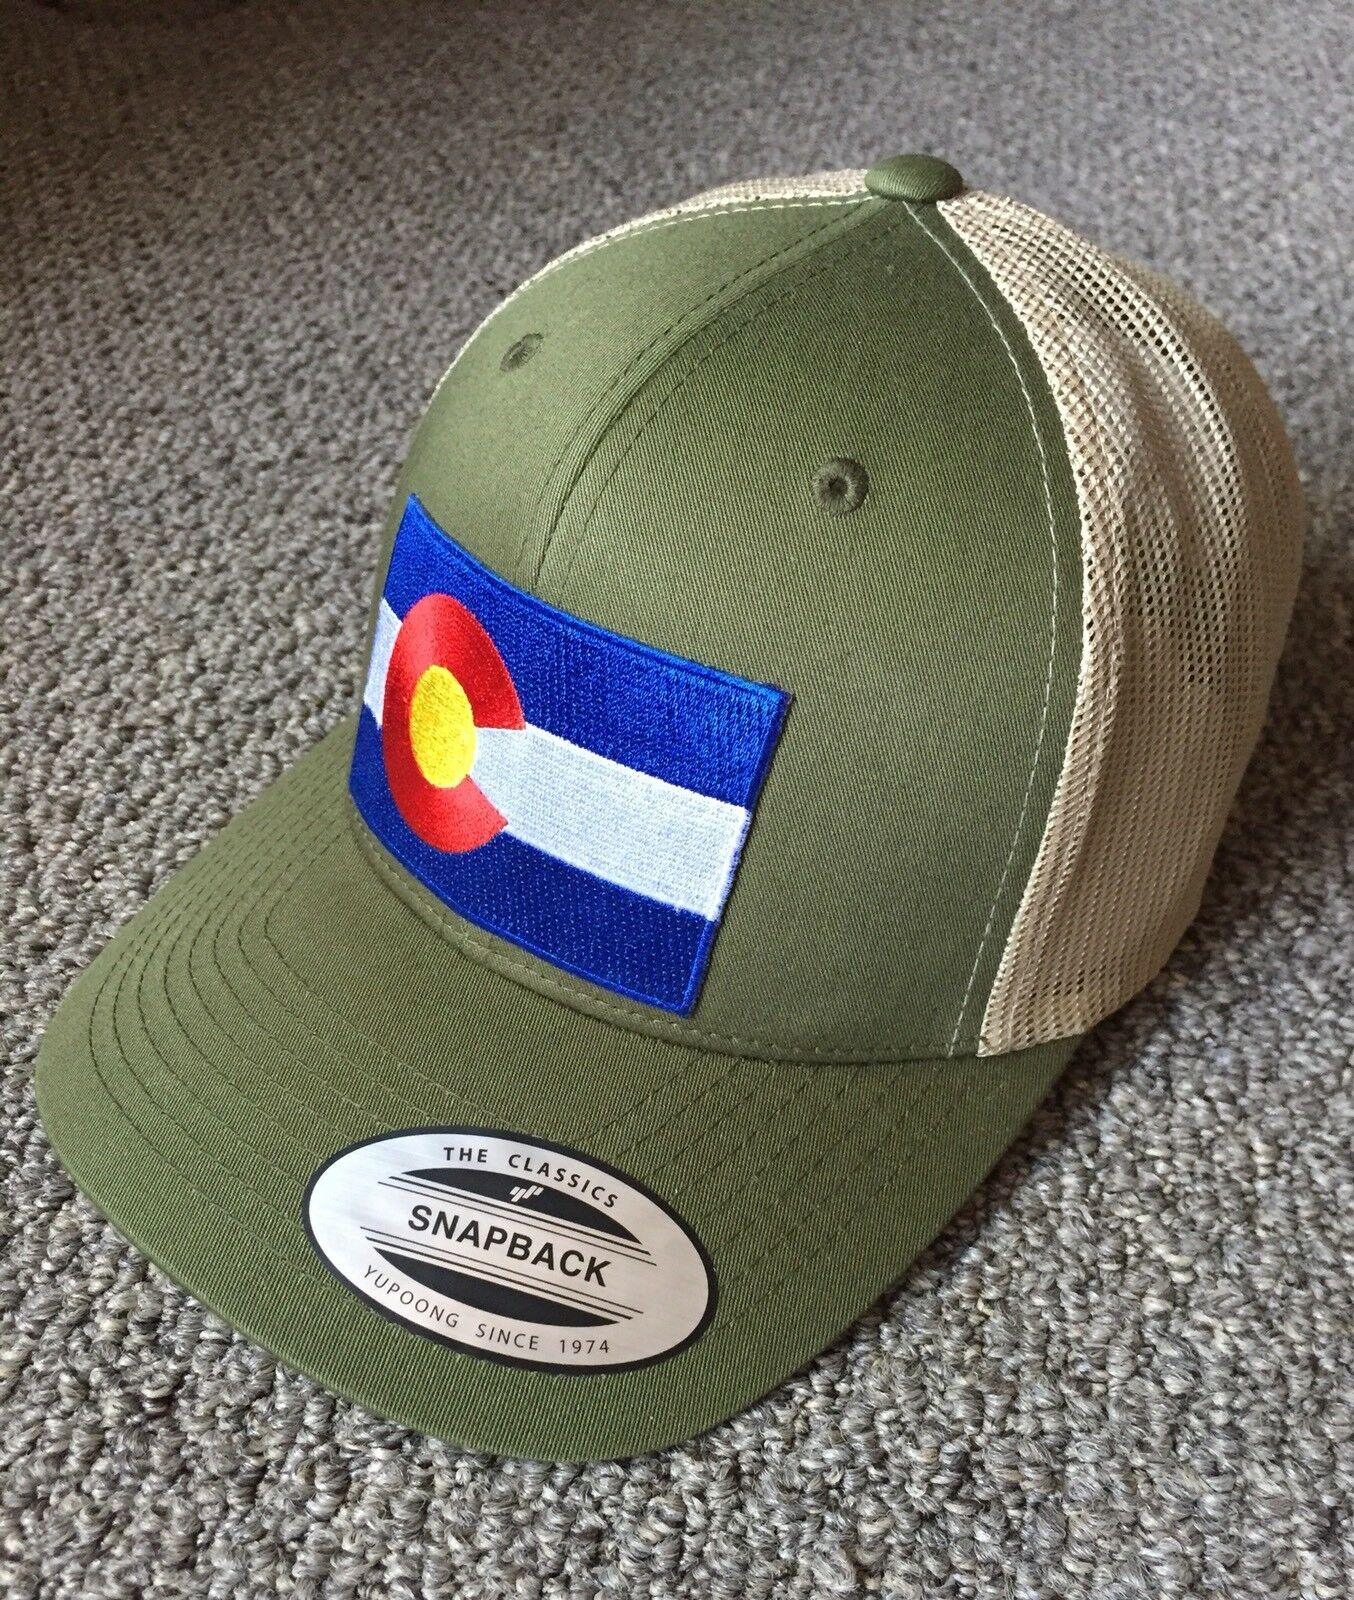 State of Colorado Flag Hat SnapBack Trucker Mesh Cap Cap Cap Made in the USAMoss/Khaki 1723bd